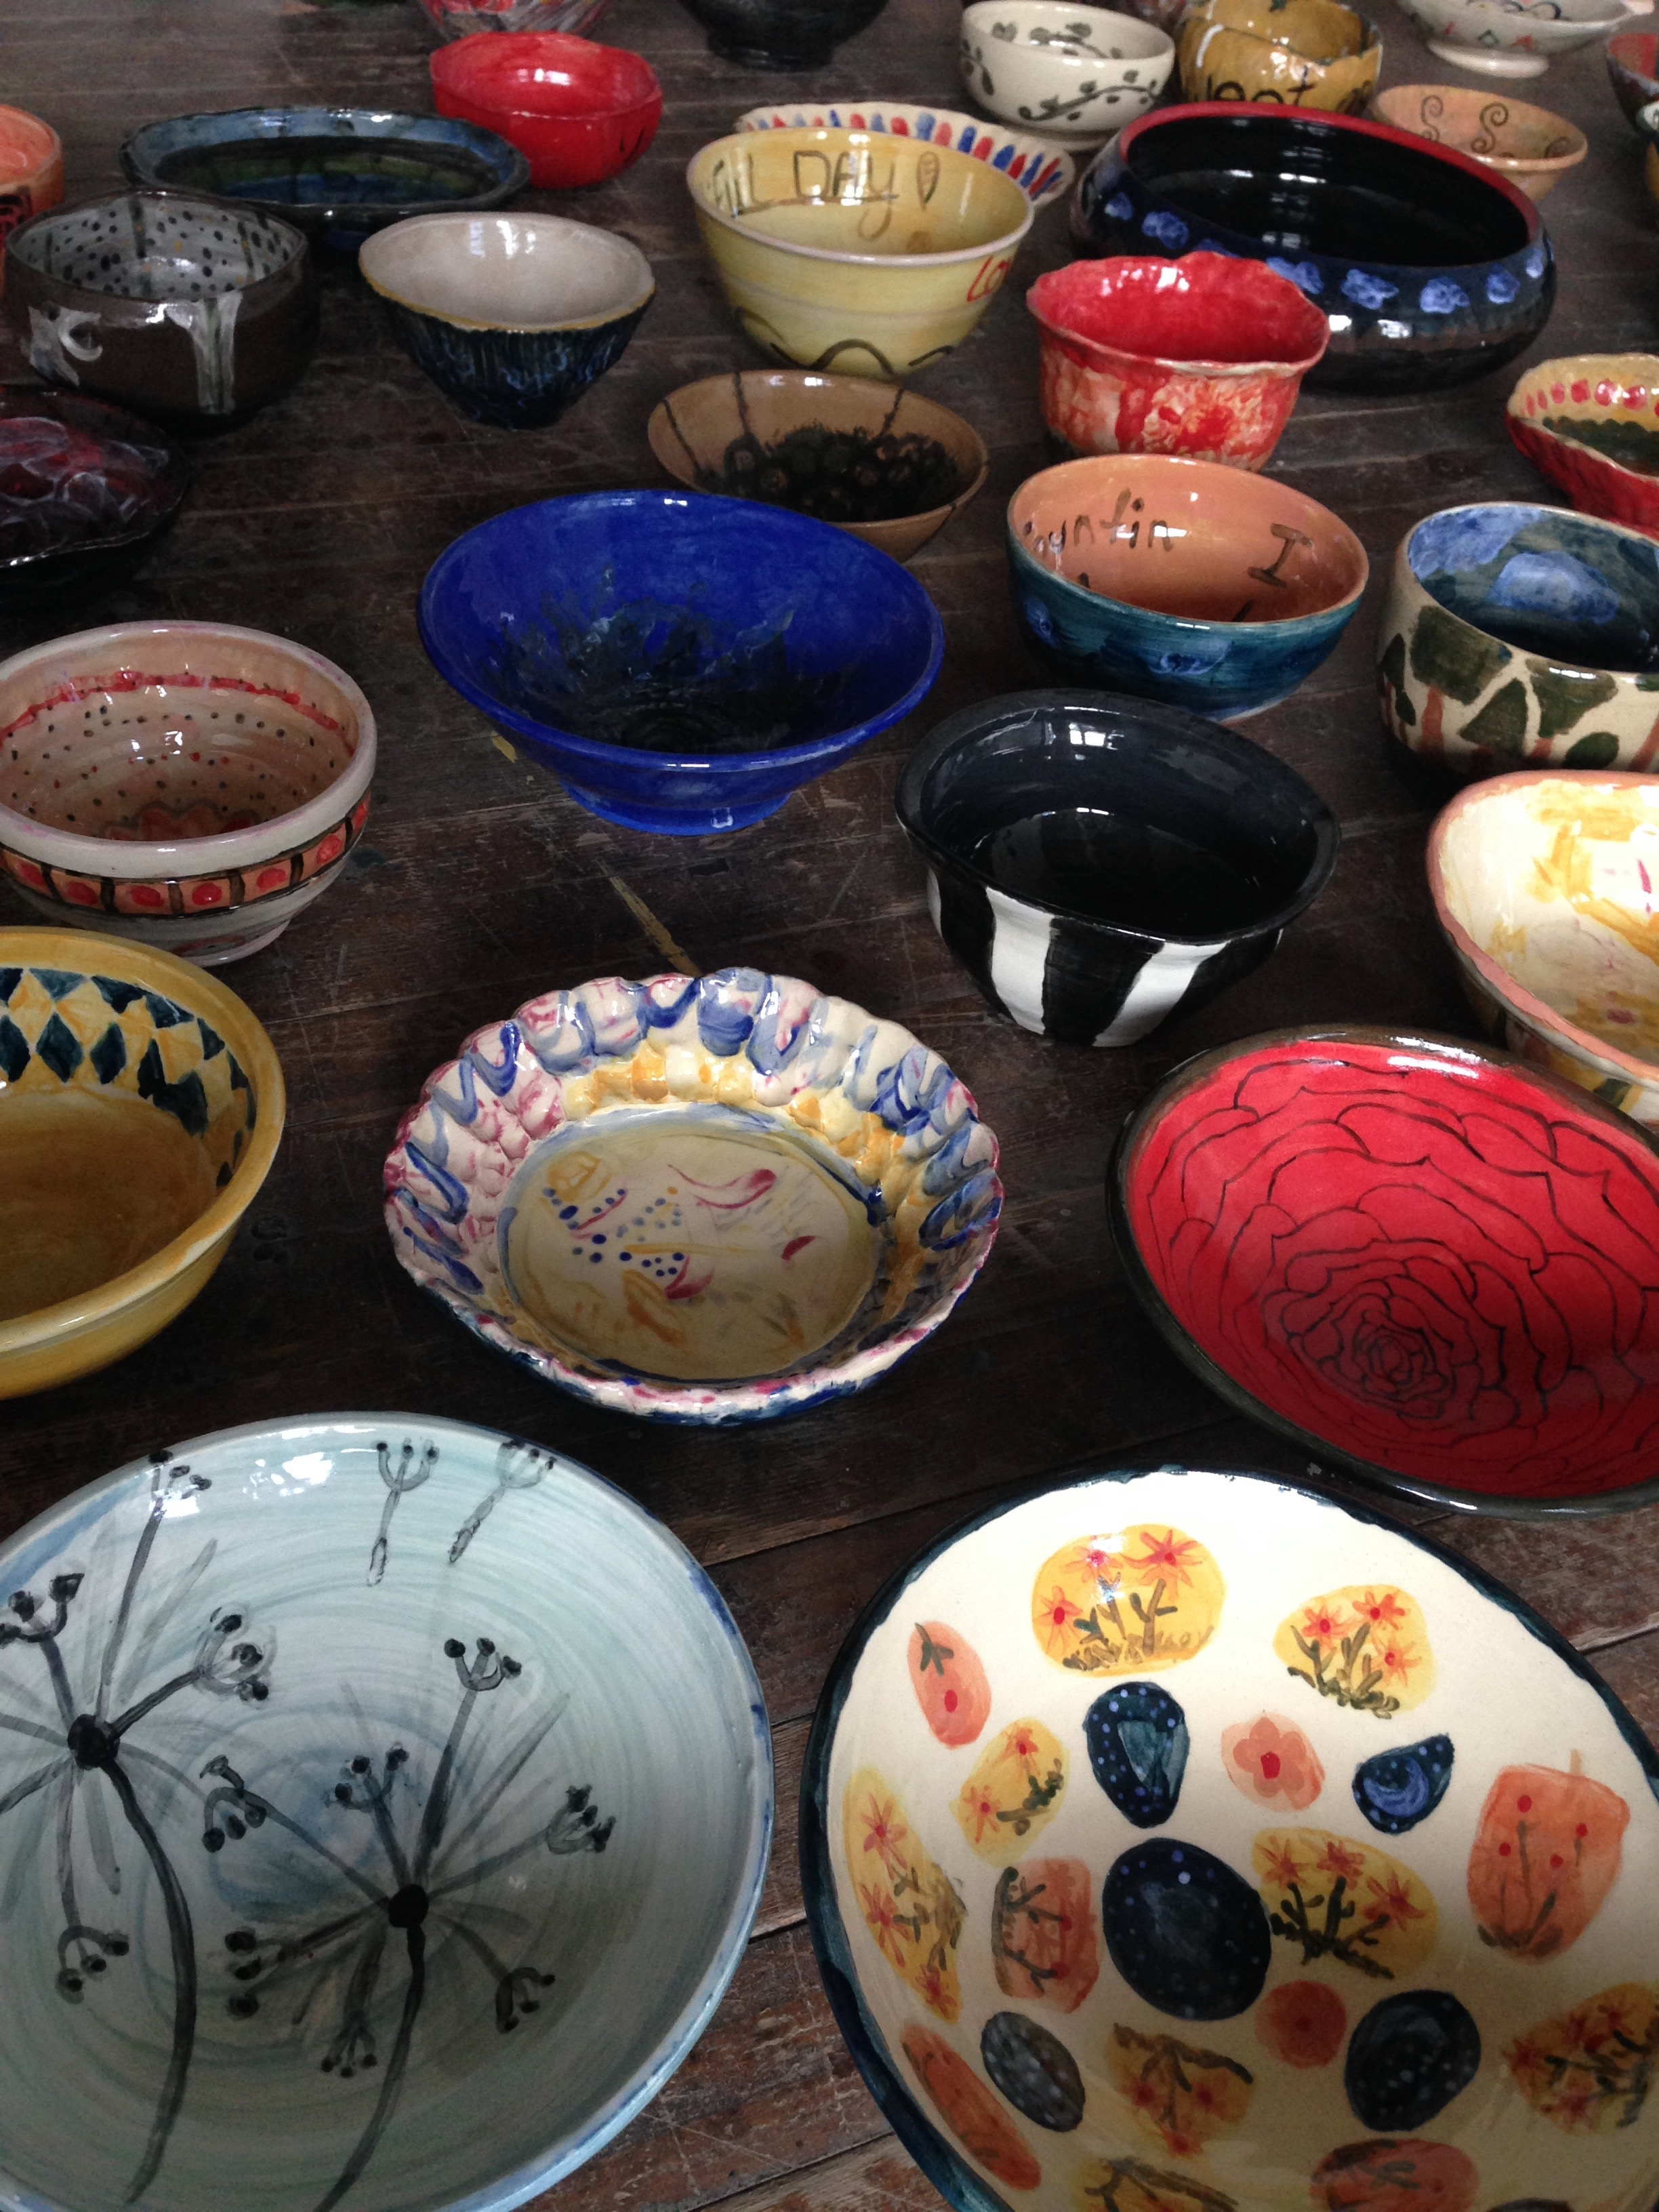 JOIN USat Pioneer Courthouse Square on September 23, 2018 - Celebrate with us at Pioneer Courthouse Square on September 23, 2018 and meet the many participants, sponsors, and volunteers!The hand-painted bowls will be available for sale, and we will contribute all proceeds to house fellow citizens.There will be music, poetry, and opportunities to learn more through community liaisons who will highlight practical considerations that may help build genuine connections between diverse communities.